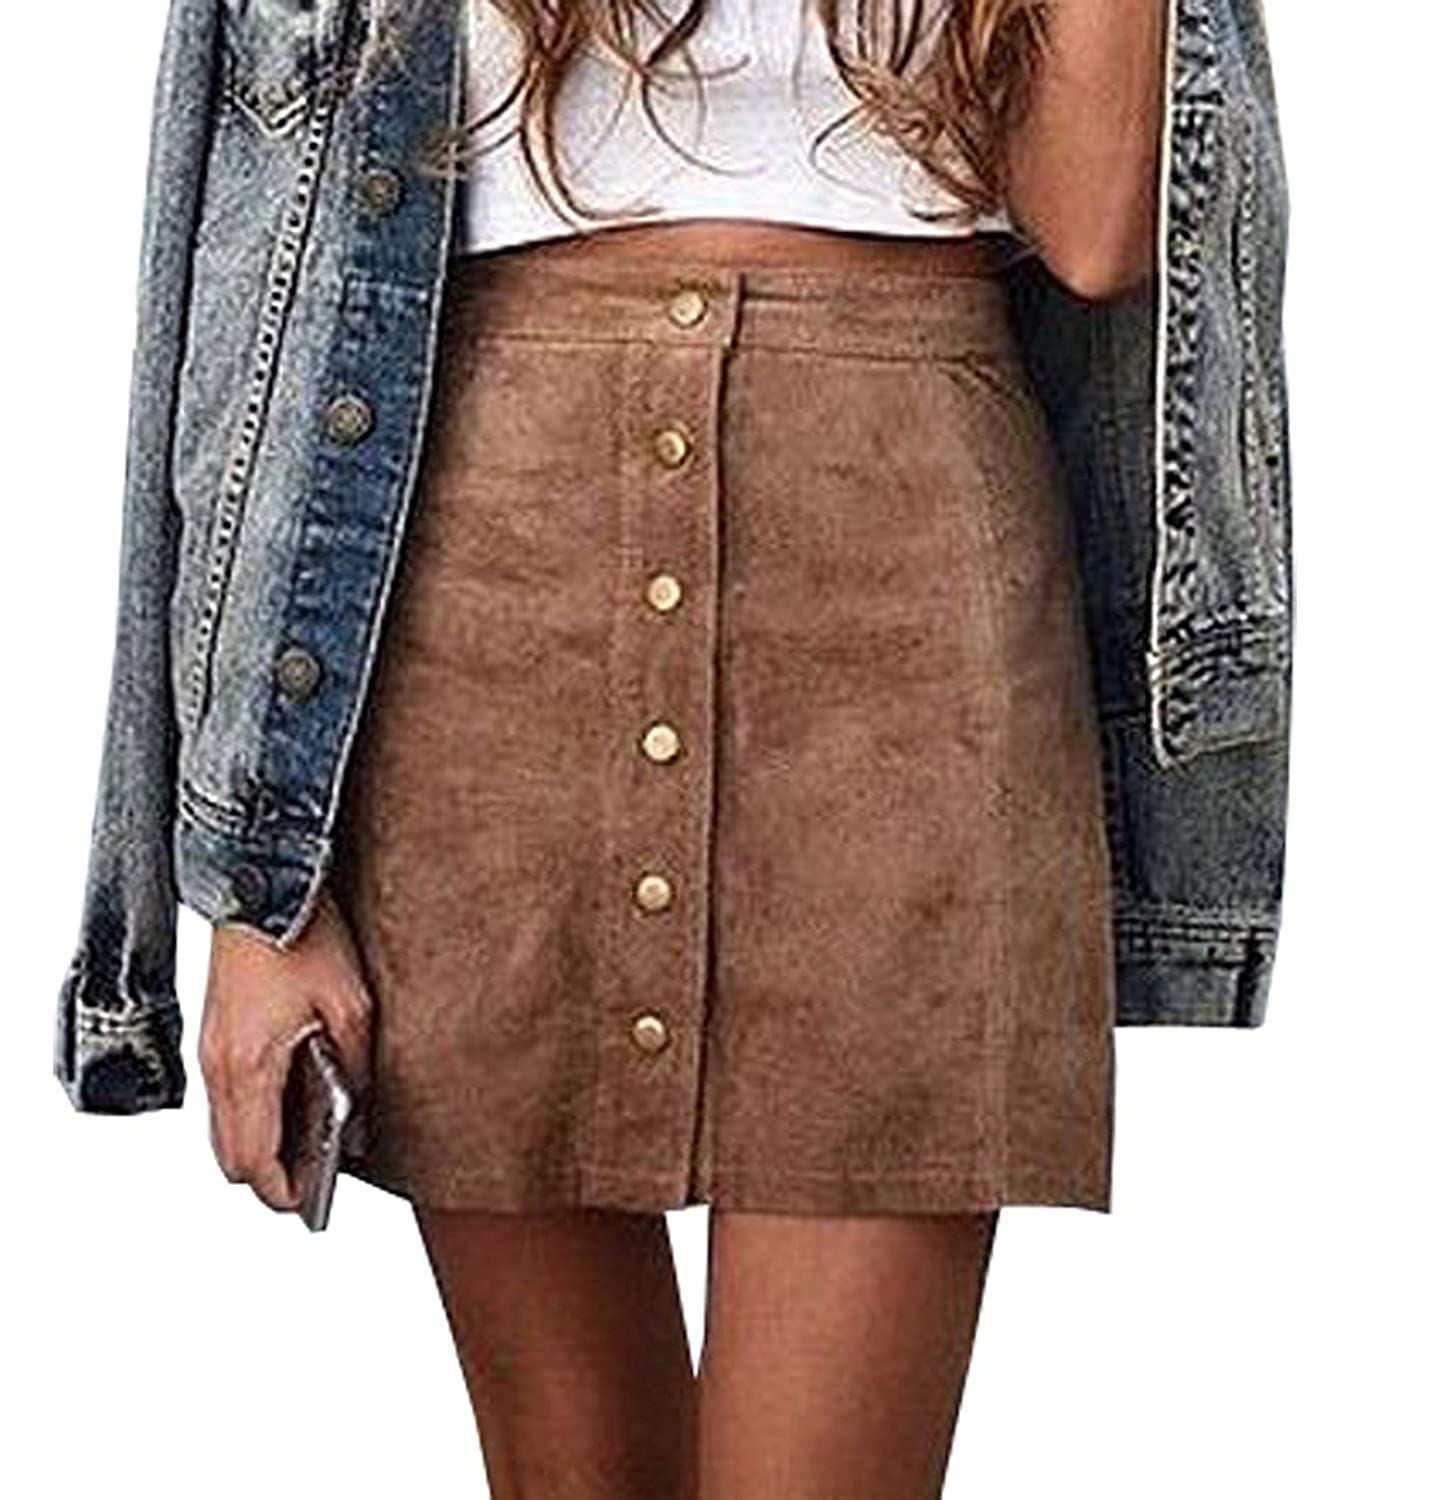 1ba66b5a89 Material: Brown and maroon skirts: faux suede. Others: Corduroy.(Note:  fashion moving is the only legal seller, others are fake, do not buy from  them)